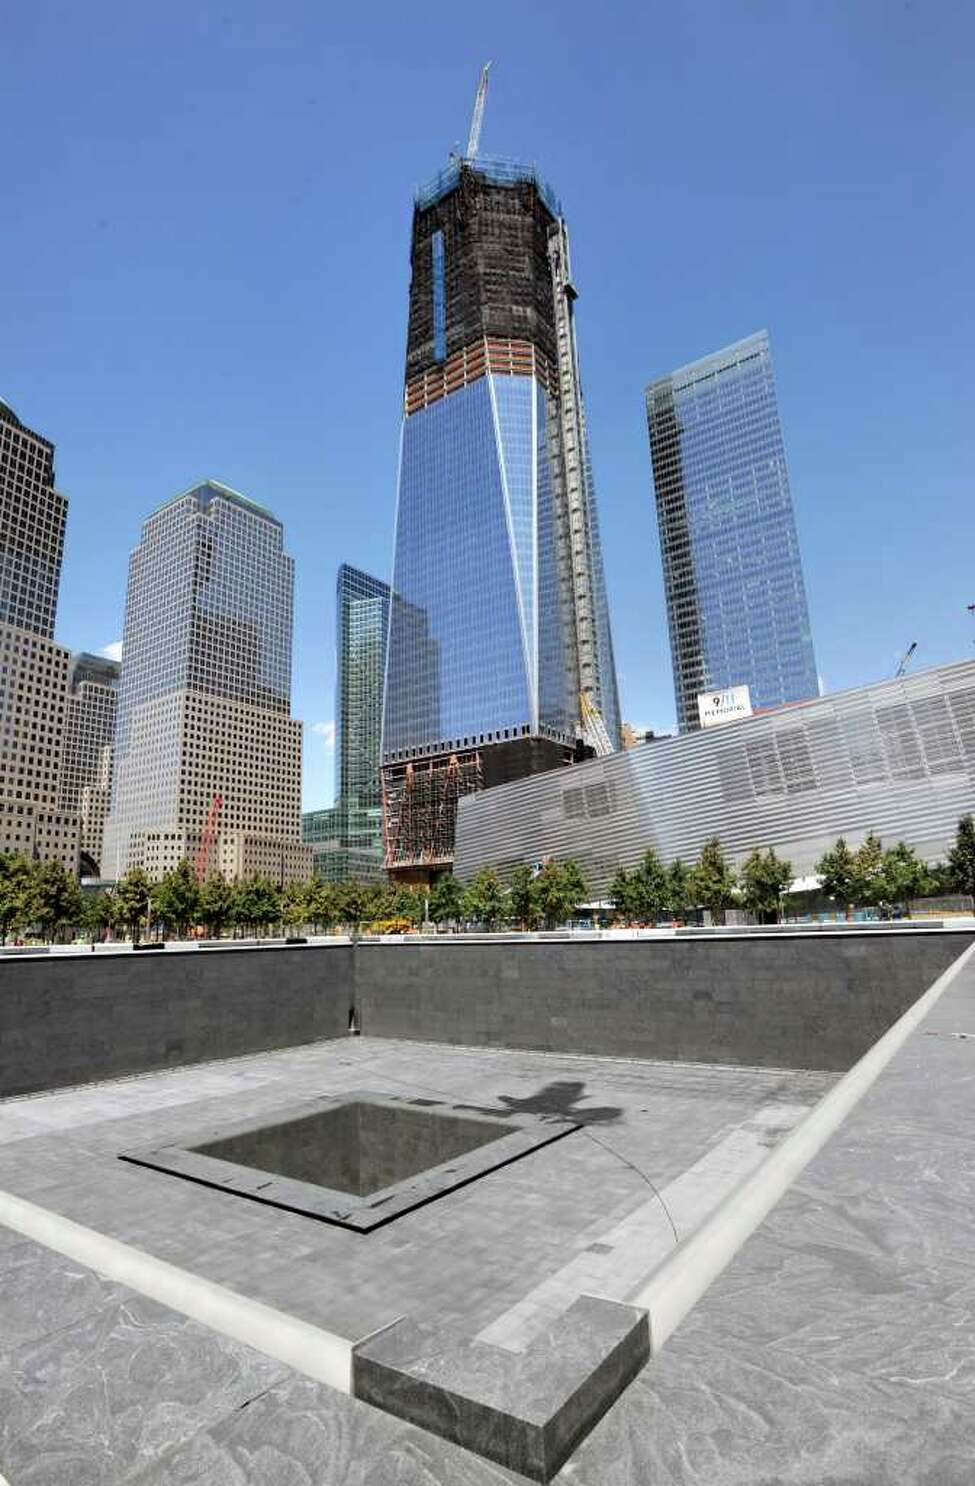 The footprint of the south tower of the World Trade Center with the Freedom Tower, also known as One World Trade Center, New York City, Thursday, Aug. 11, 2011, under construction a month before the 10th anniversary of 9/11. ( Bob Luckey / Hearst Newspapers )